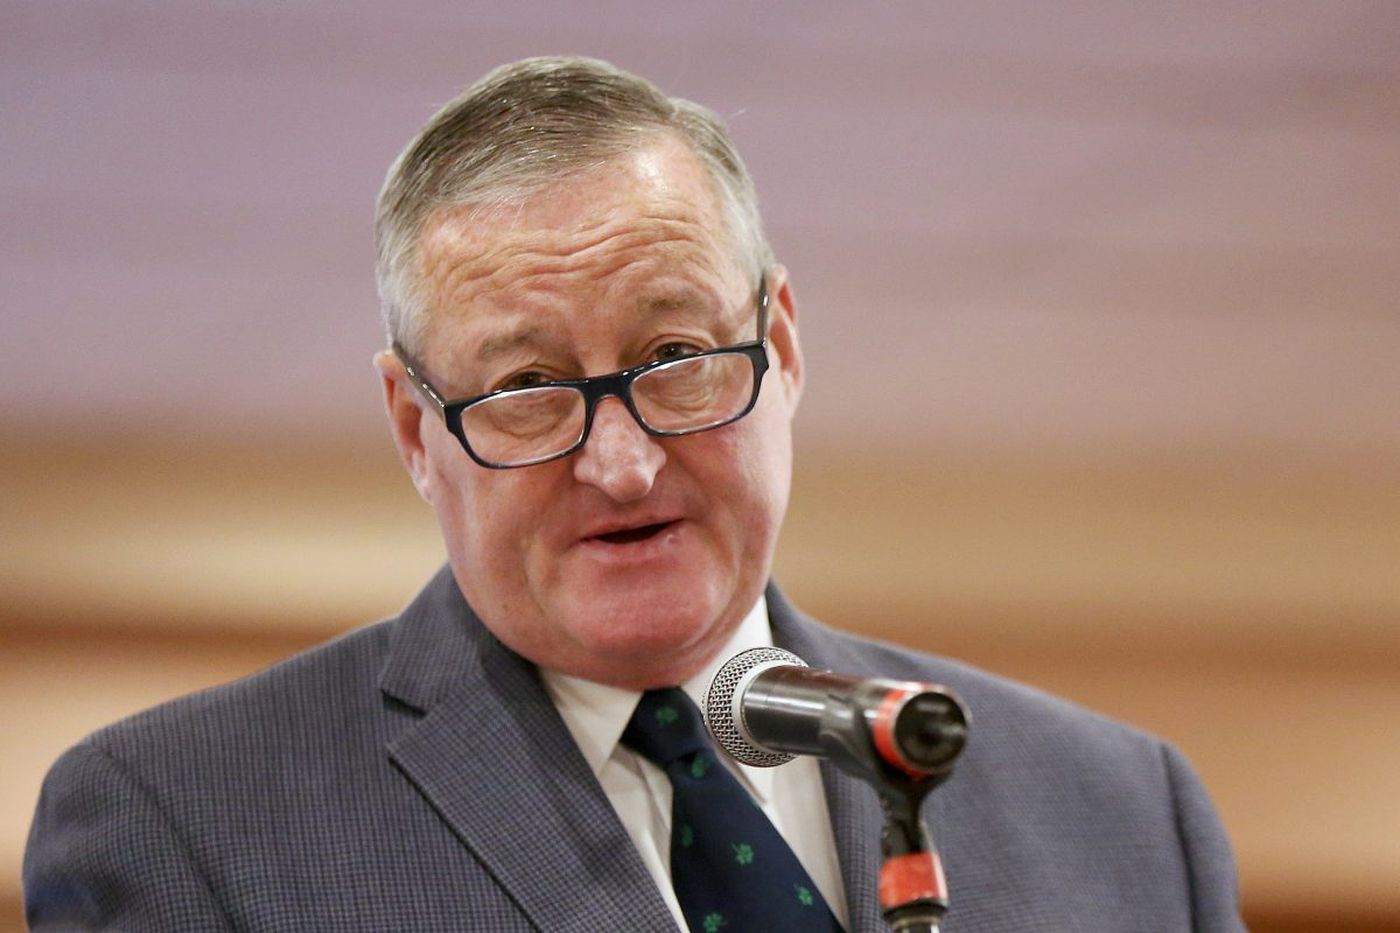 'He forgot where he came from': Is support for Mayor Kenney fading in his old South Philly neighborhood?